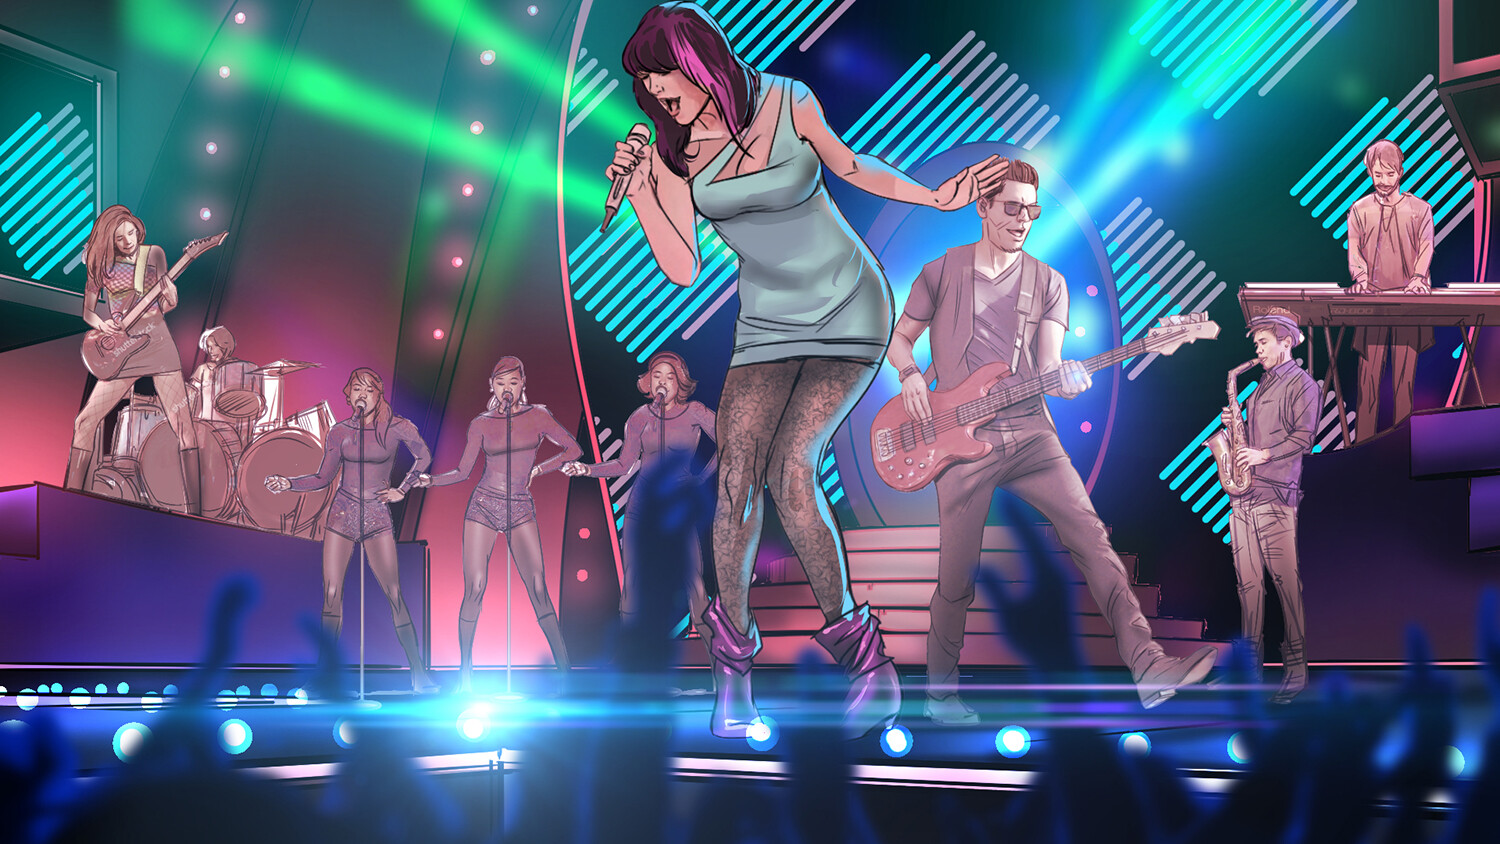 THE VOICE - Live show // PITCH keyart